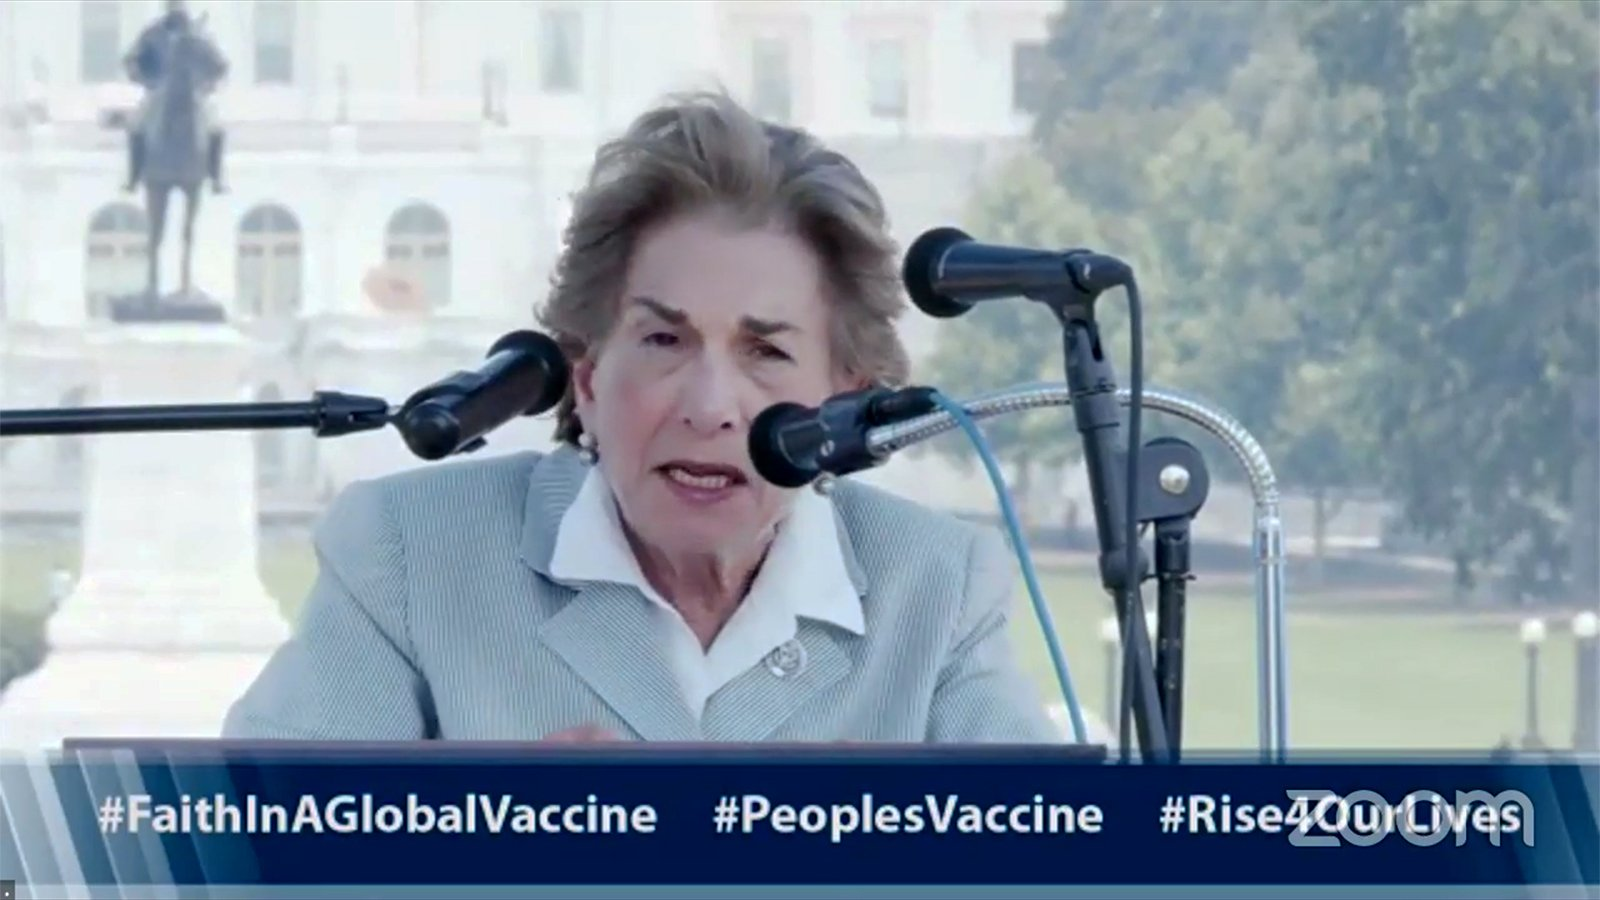 Representative Jan Schakowsky (D-IL) speaks from Washington, D.C. during a livestream of a virtual interfaith prayer service advocating for vaccine equity, Tuesday, July 20, 2021. Video screengrab